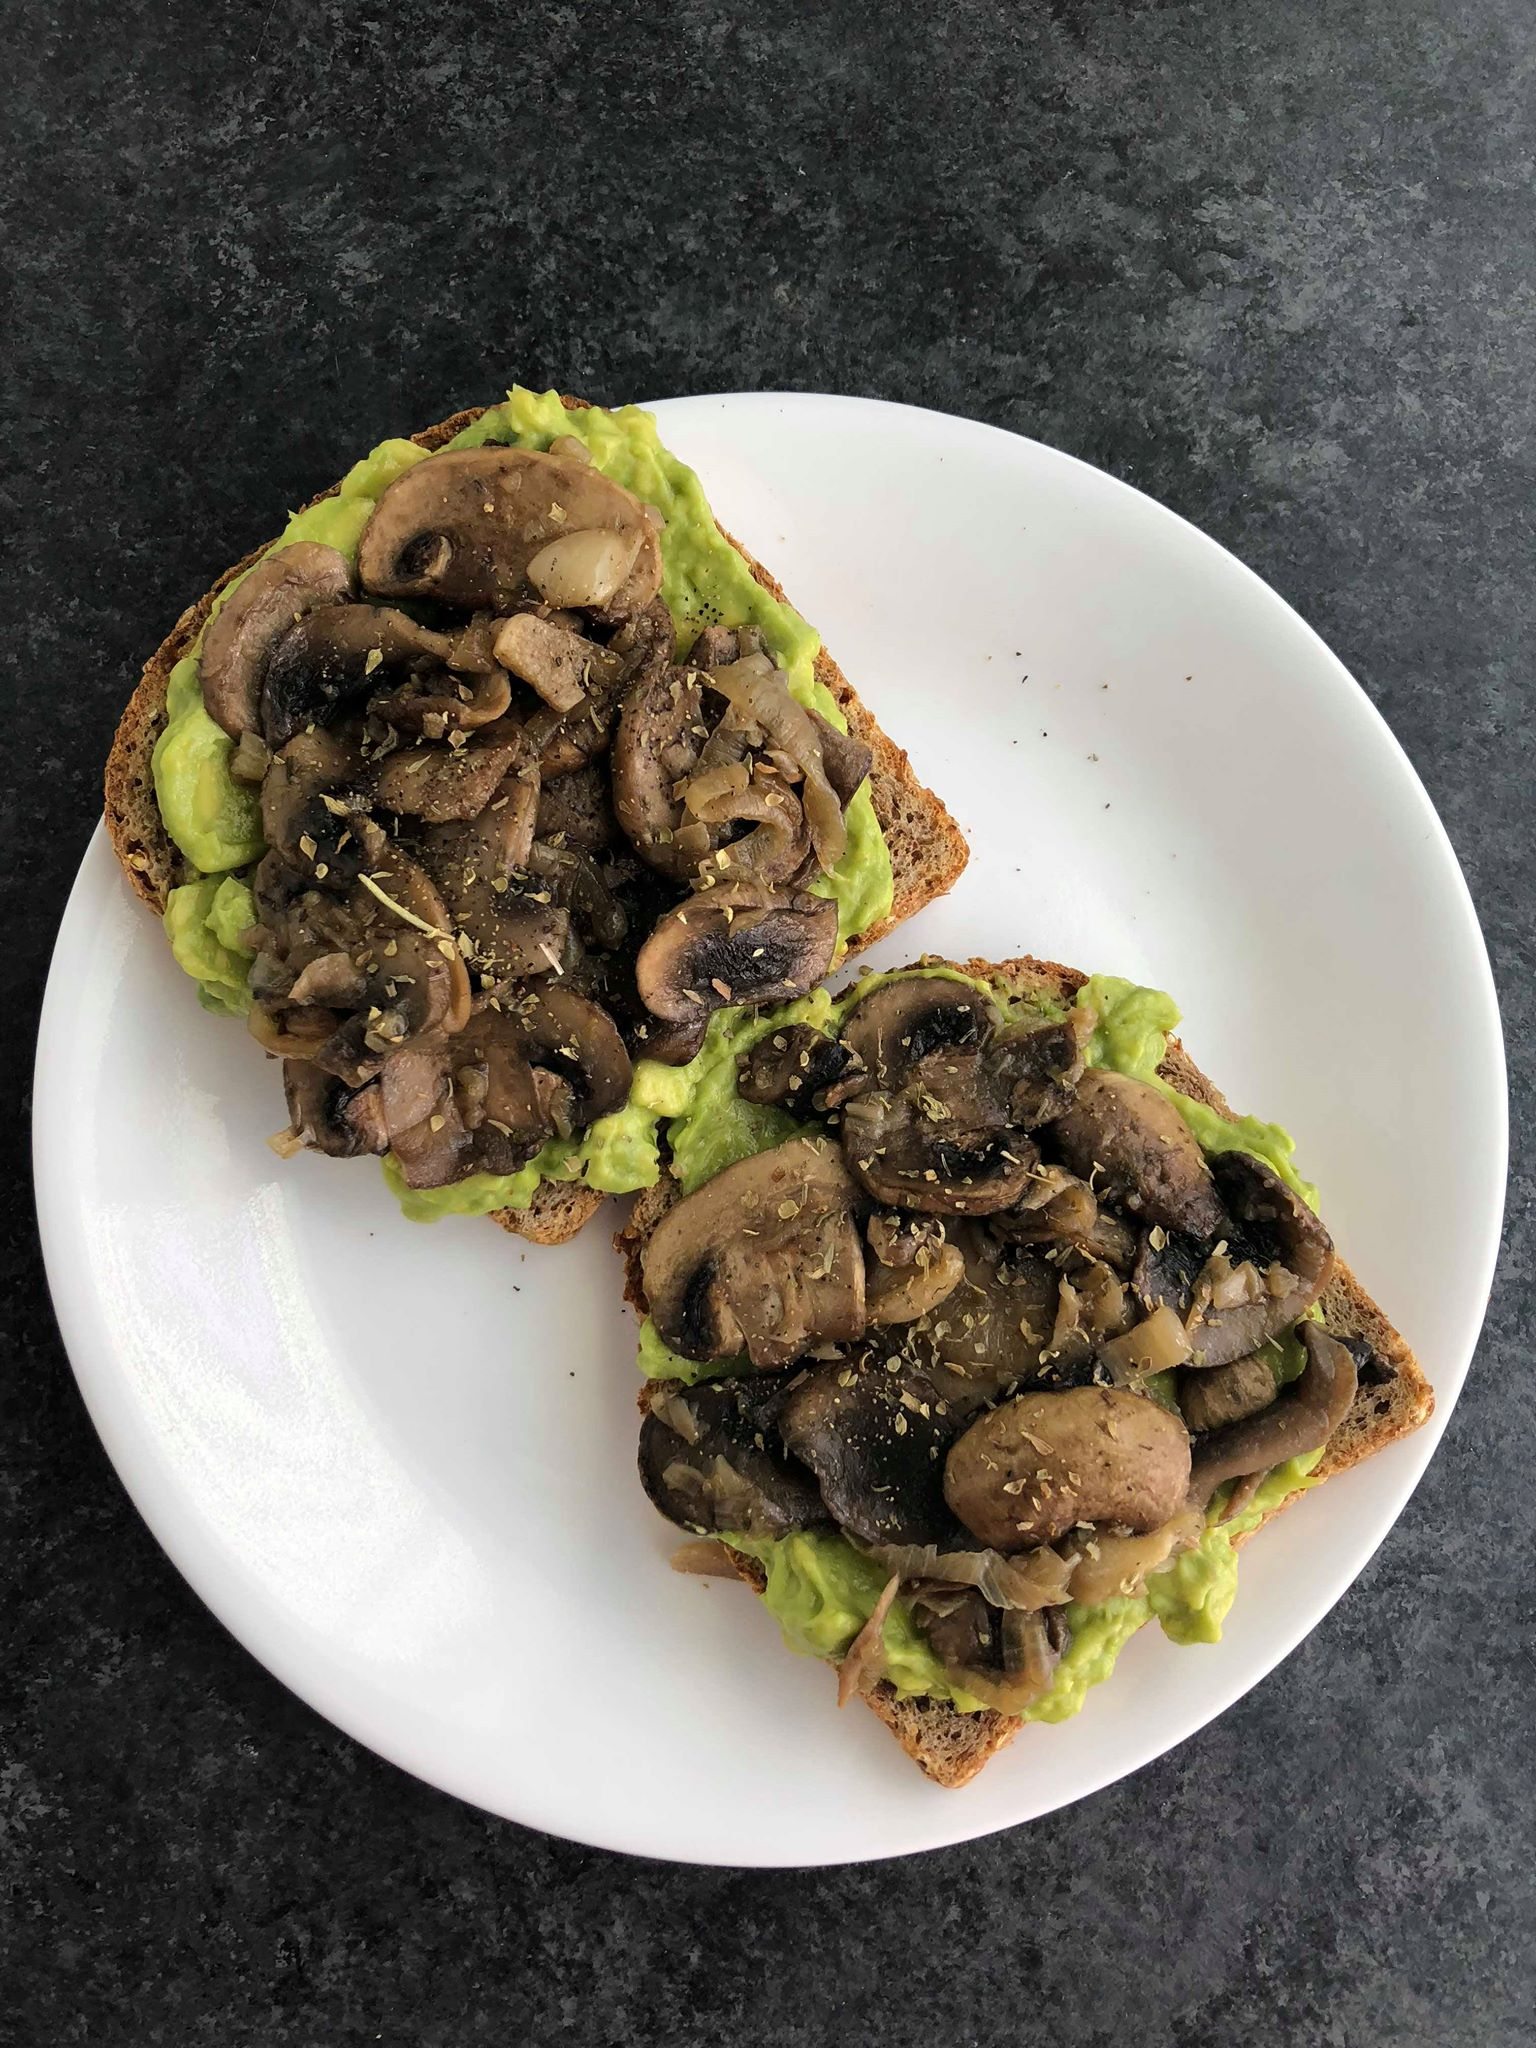 Two slices of avocado toast with mushrooms on top on a white plate with a dark background.